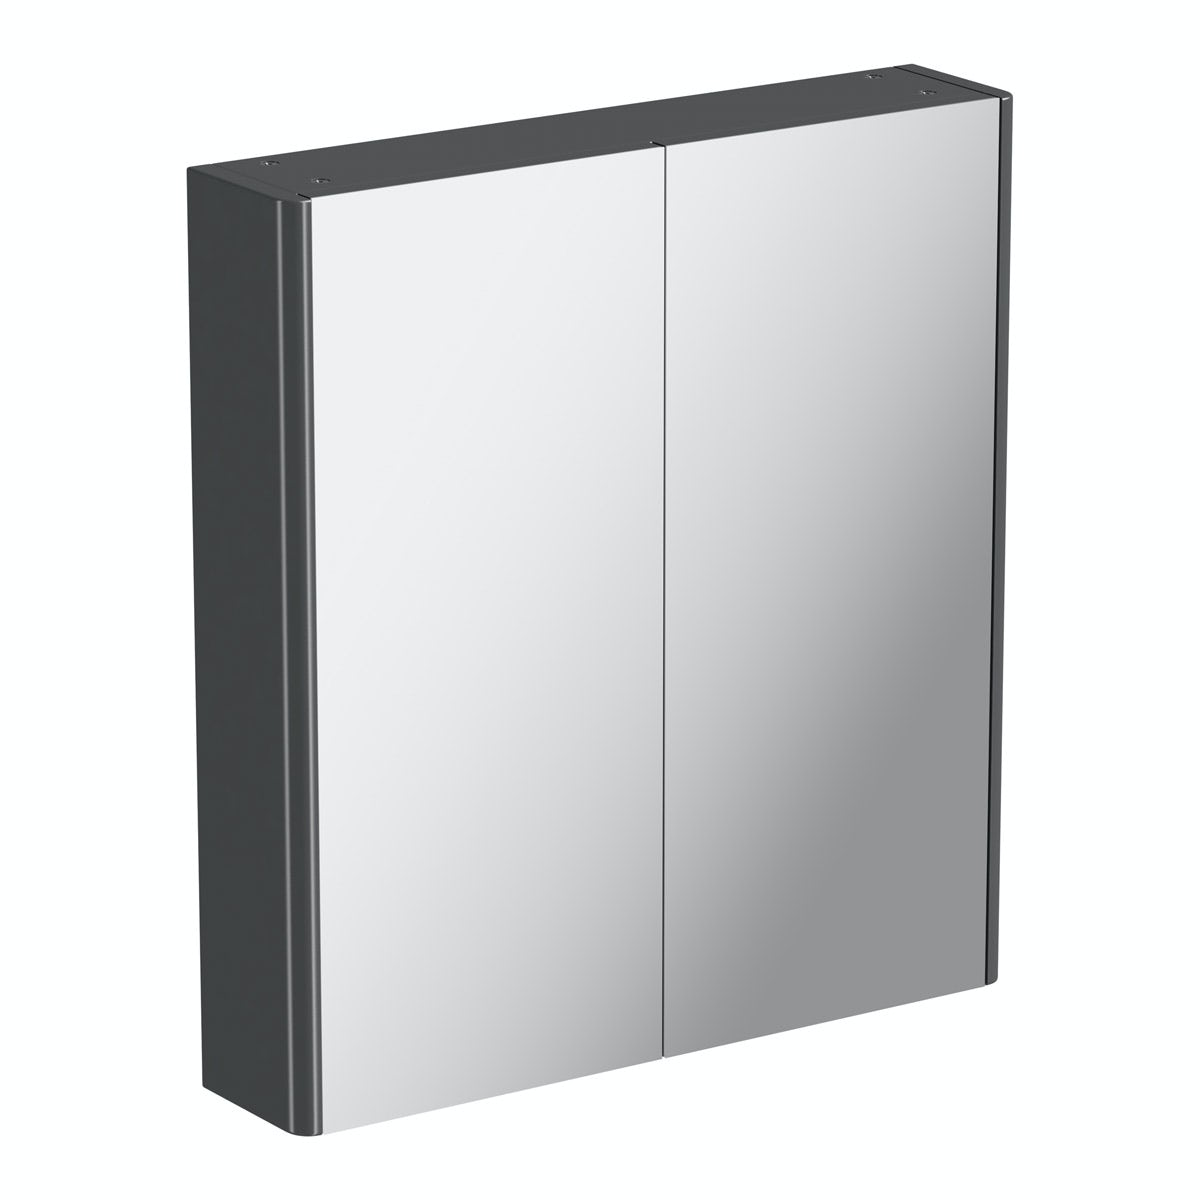 Mode slate gloss grey mirror cabinet 650 x 600mm